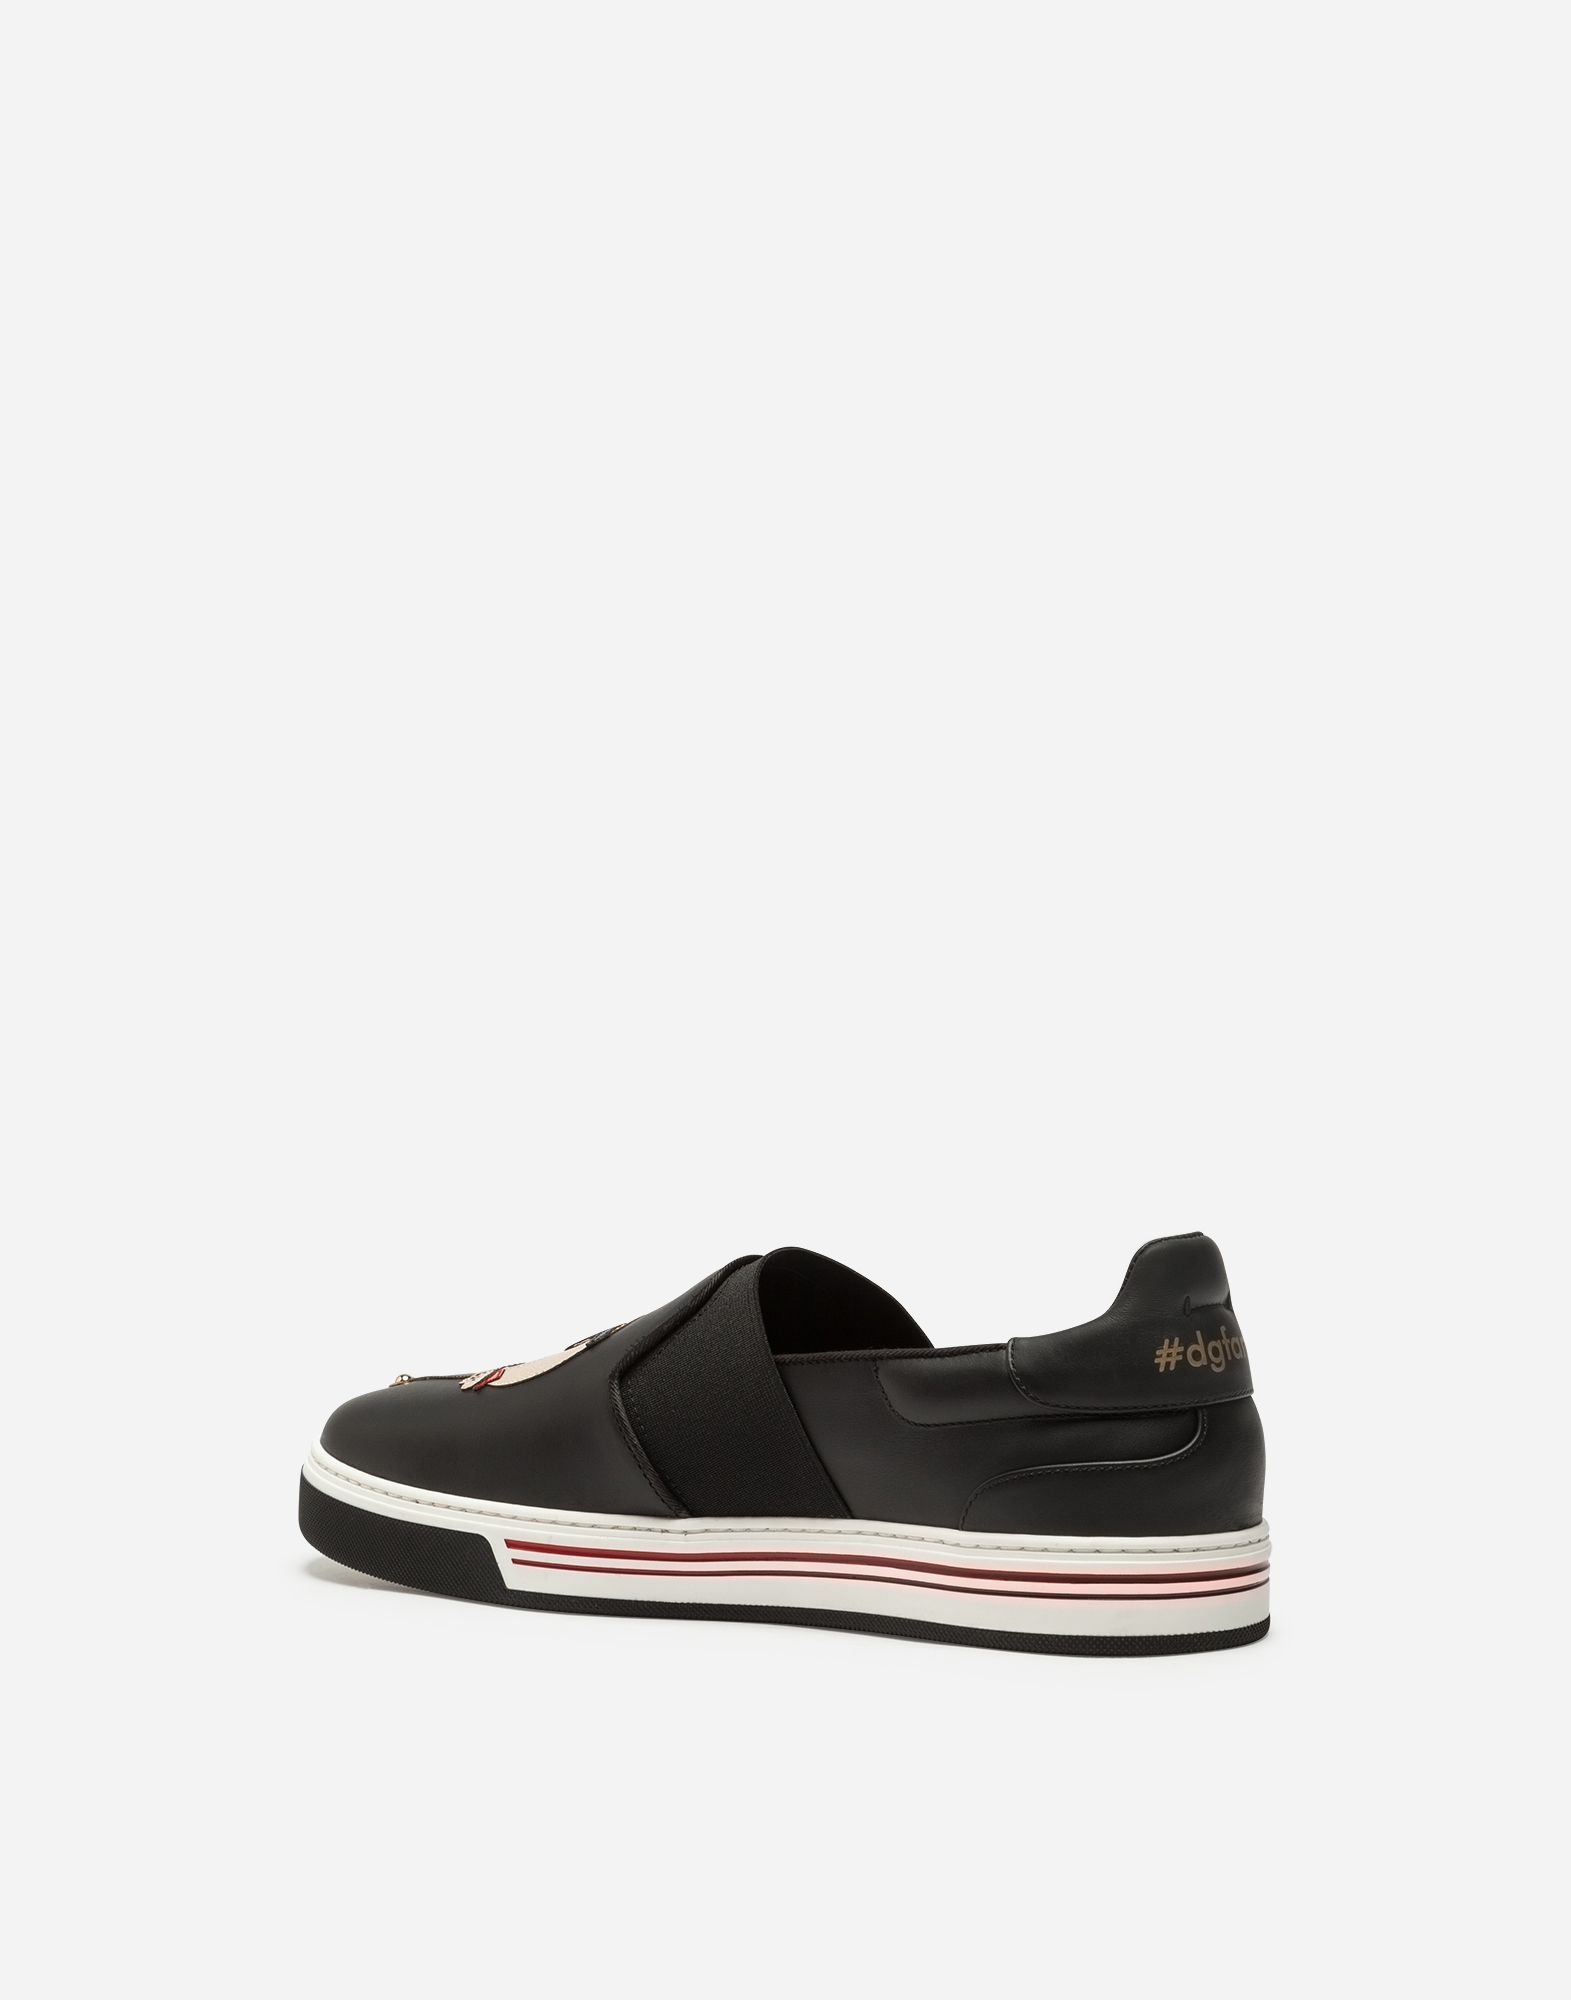 CALFSKIN ROMA SLIP-ON SNEAKERS WITH CUPID-STYLE PATCHES OF THE DESIGNERS